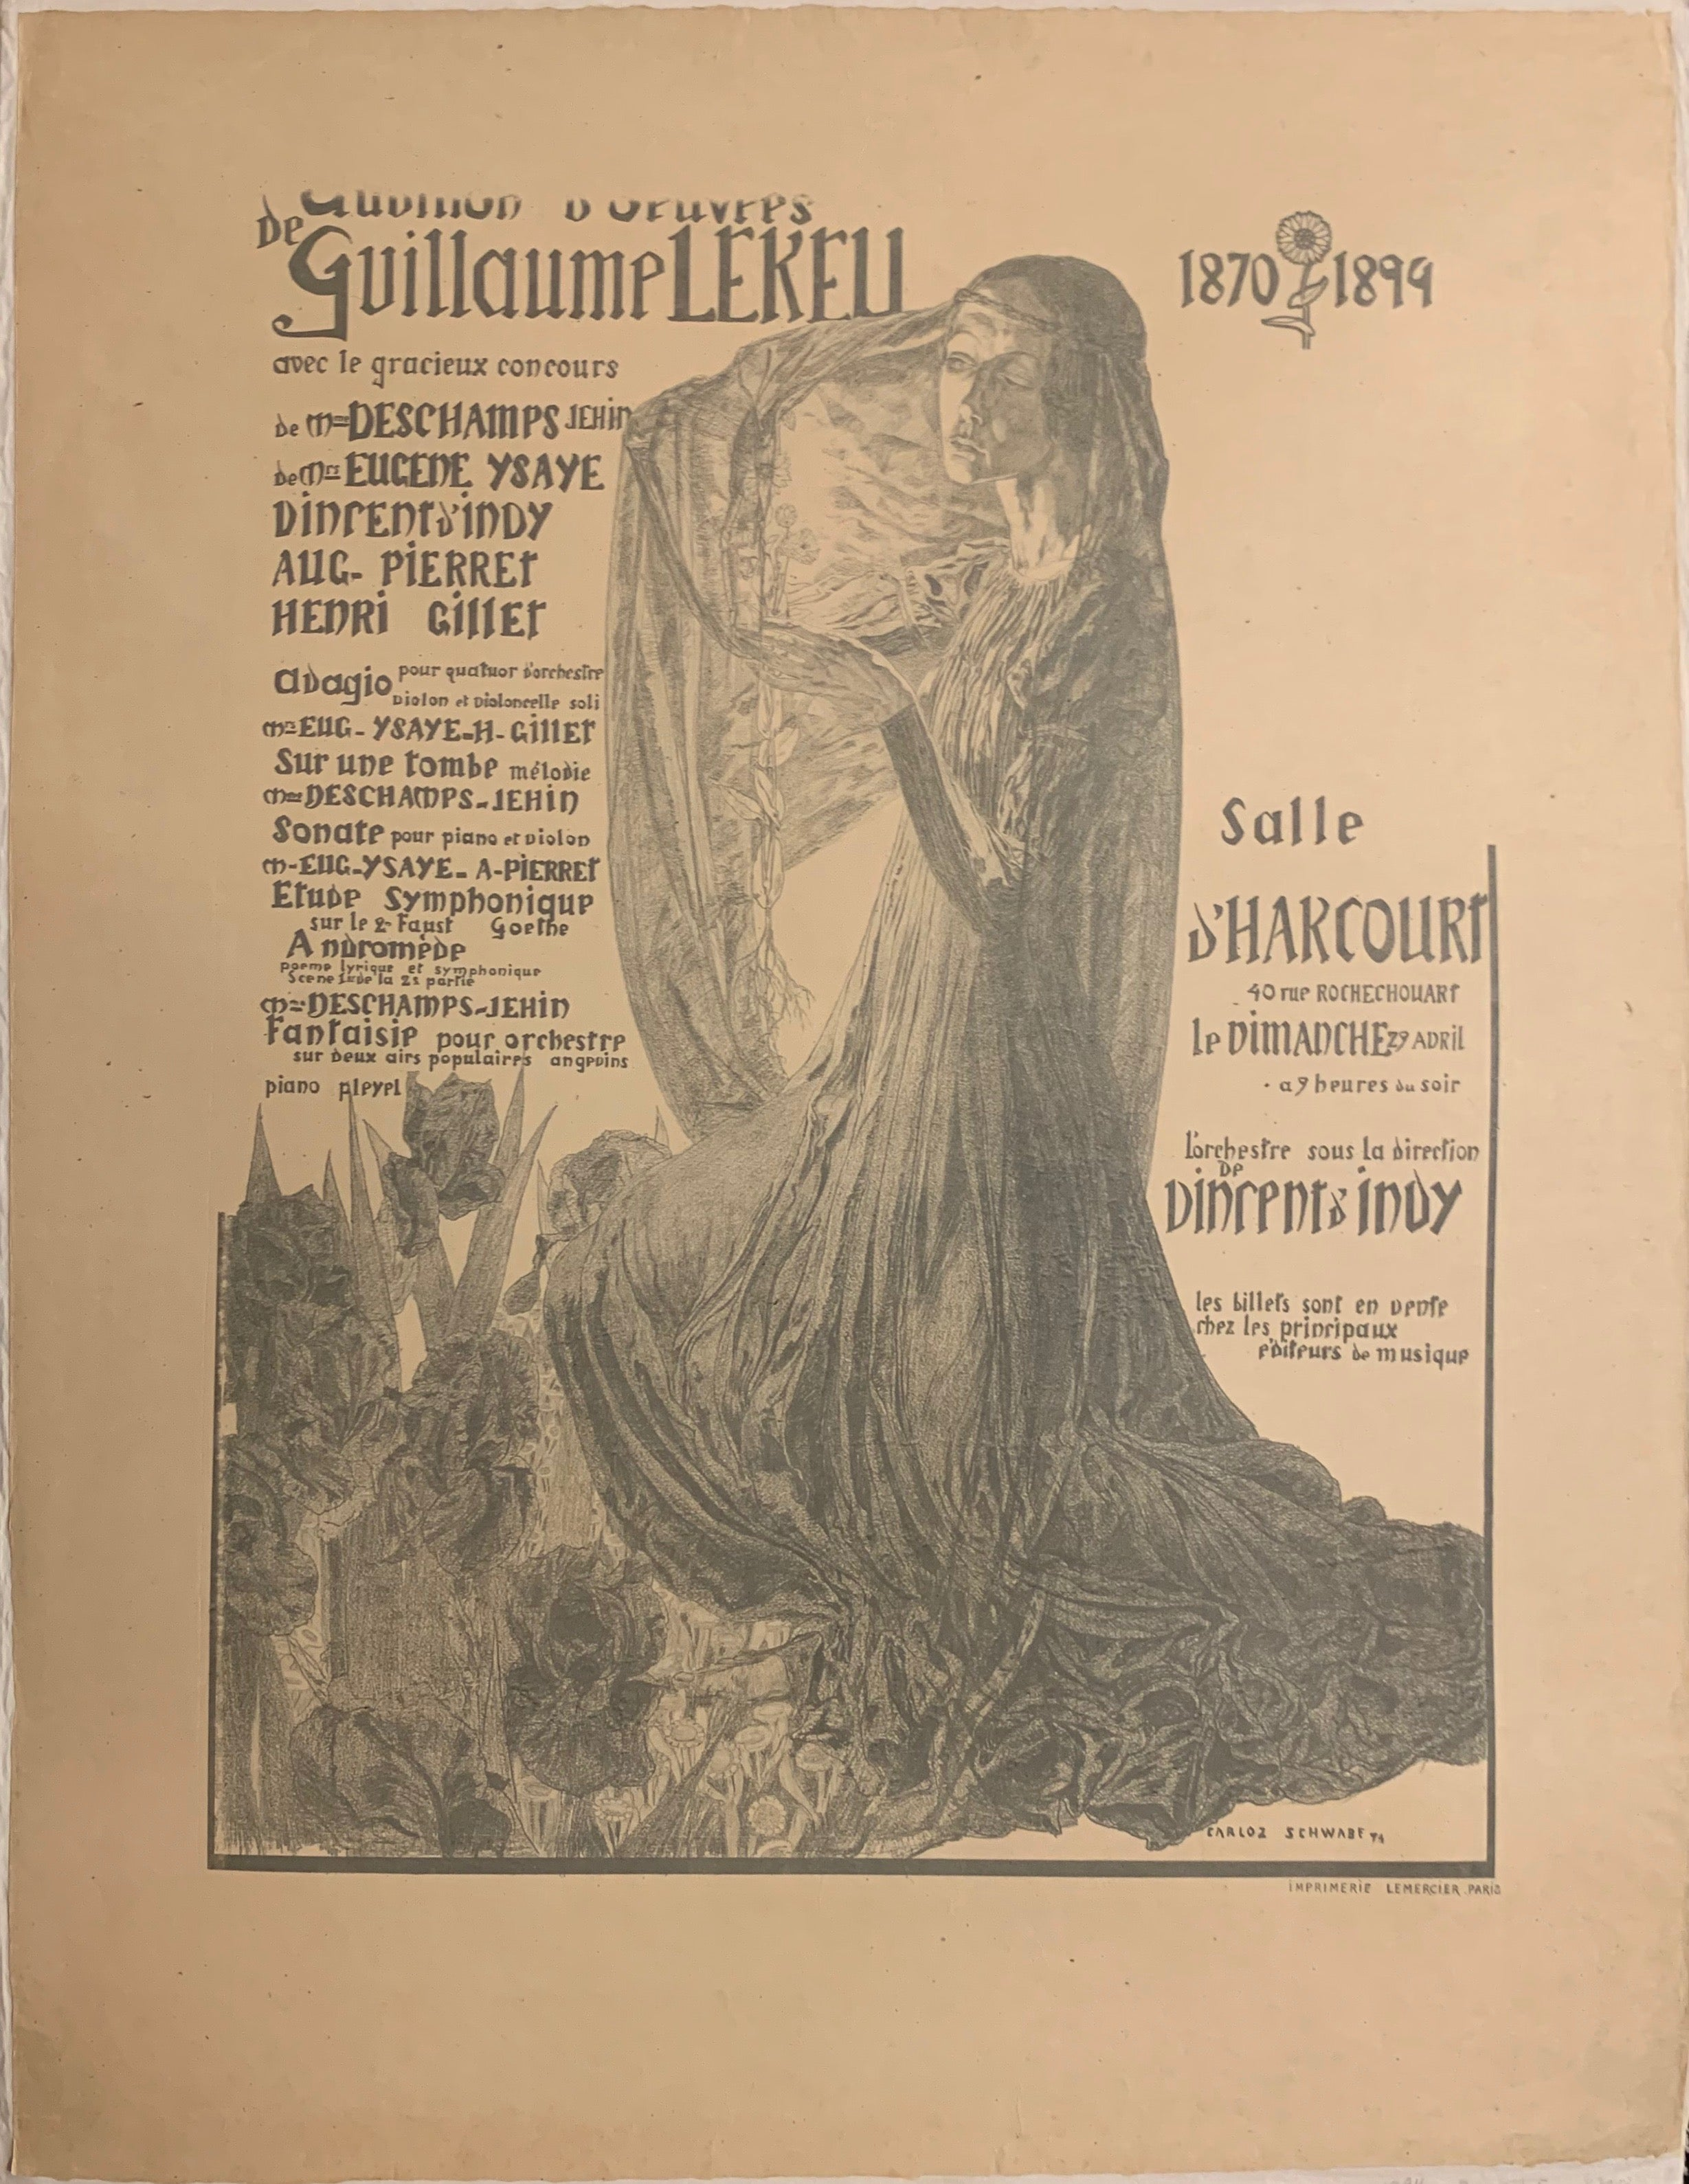 Turn of the Century poster advertising a concert, a woman in black and white illustrated in the center of the poster, wearing a long, draped gown.